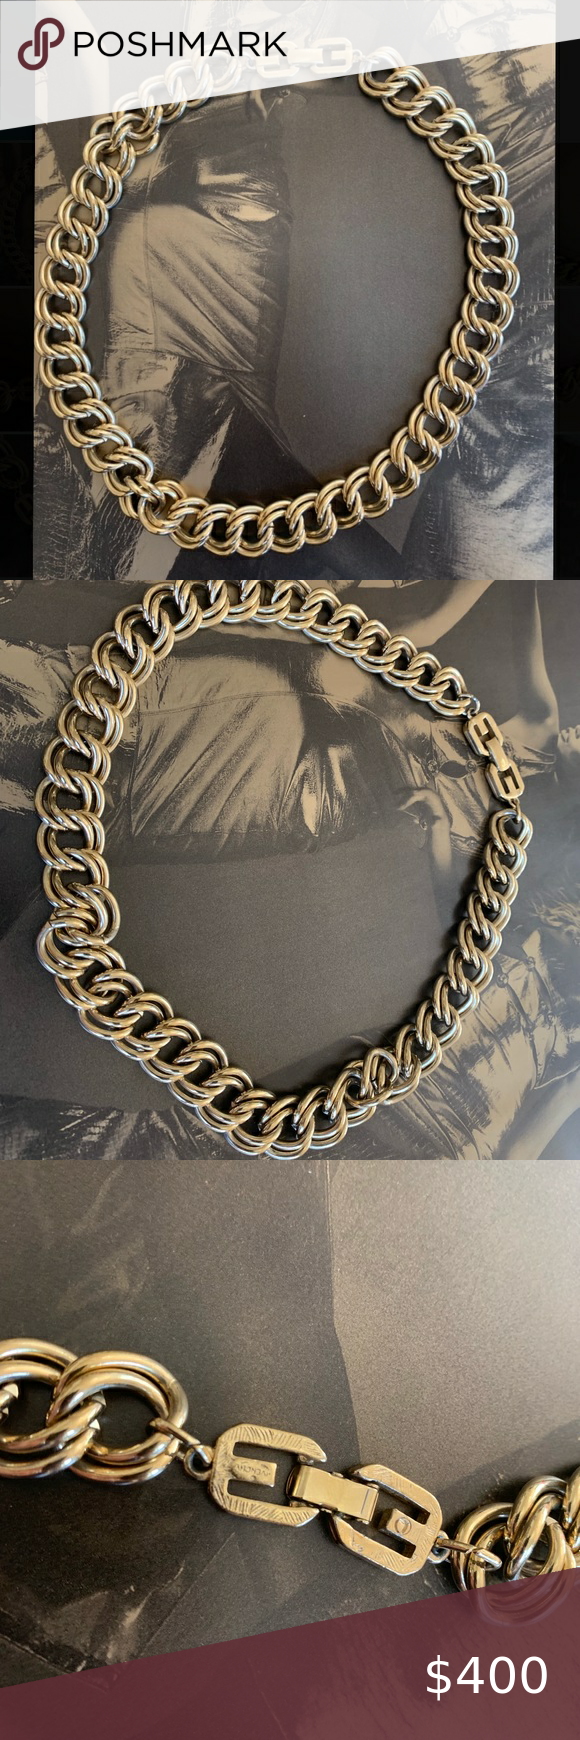 Vintage Givenchy Gold Chain Necklace In 2020 Vintage Givenchy Gold Chain Necklace Chain Necklace